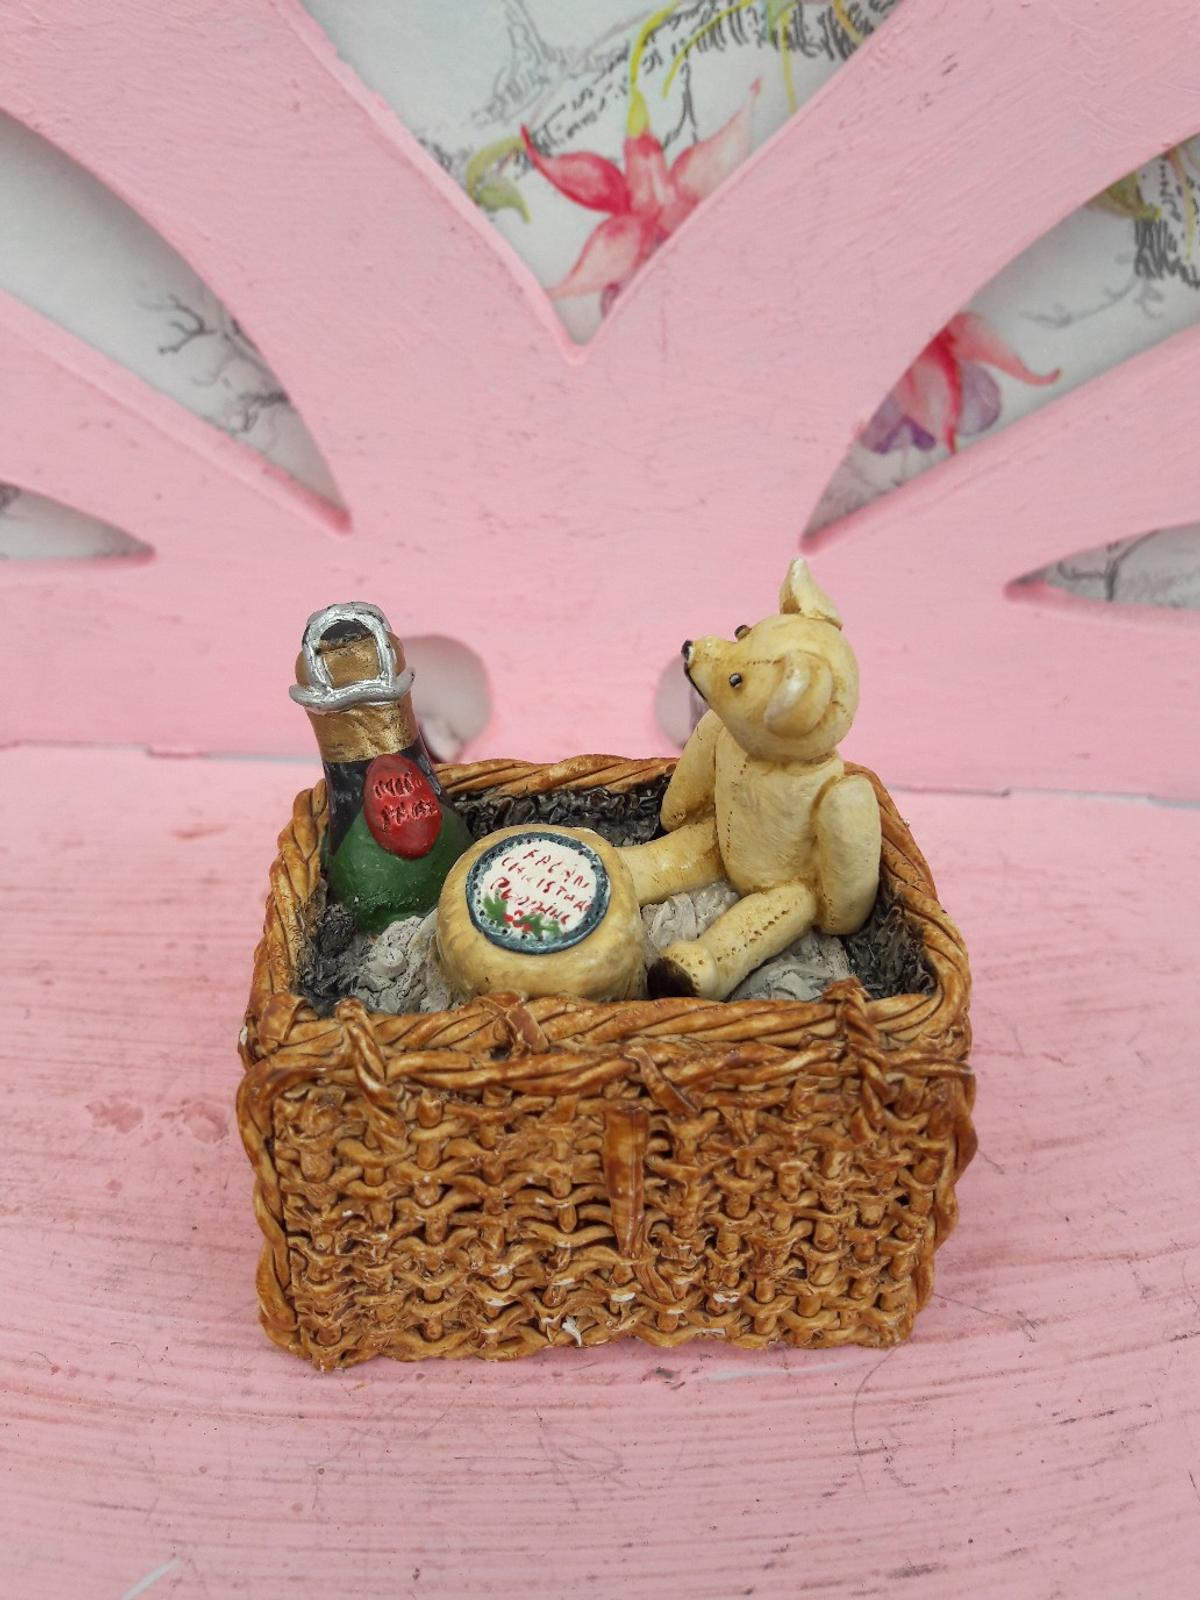 Cute little teddy bears picnic ornament.  Please check out my other items ☺